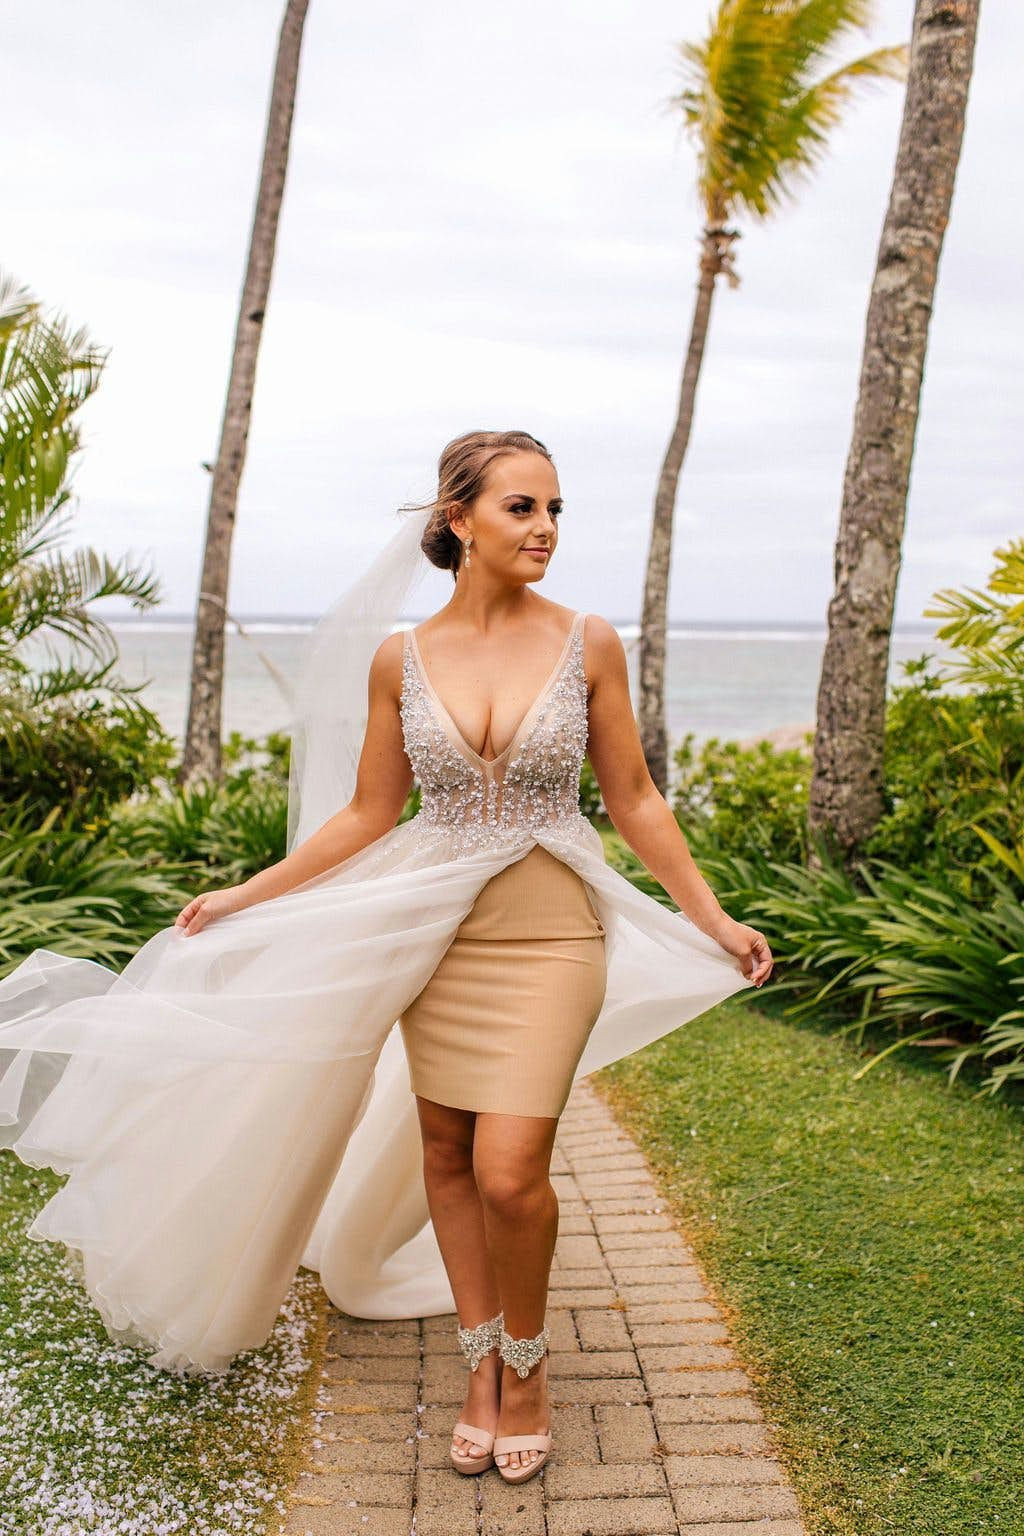 Outrigger Fiji Beach Resort Wedding - Mornington Peninsula Wedding Photographer